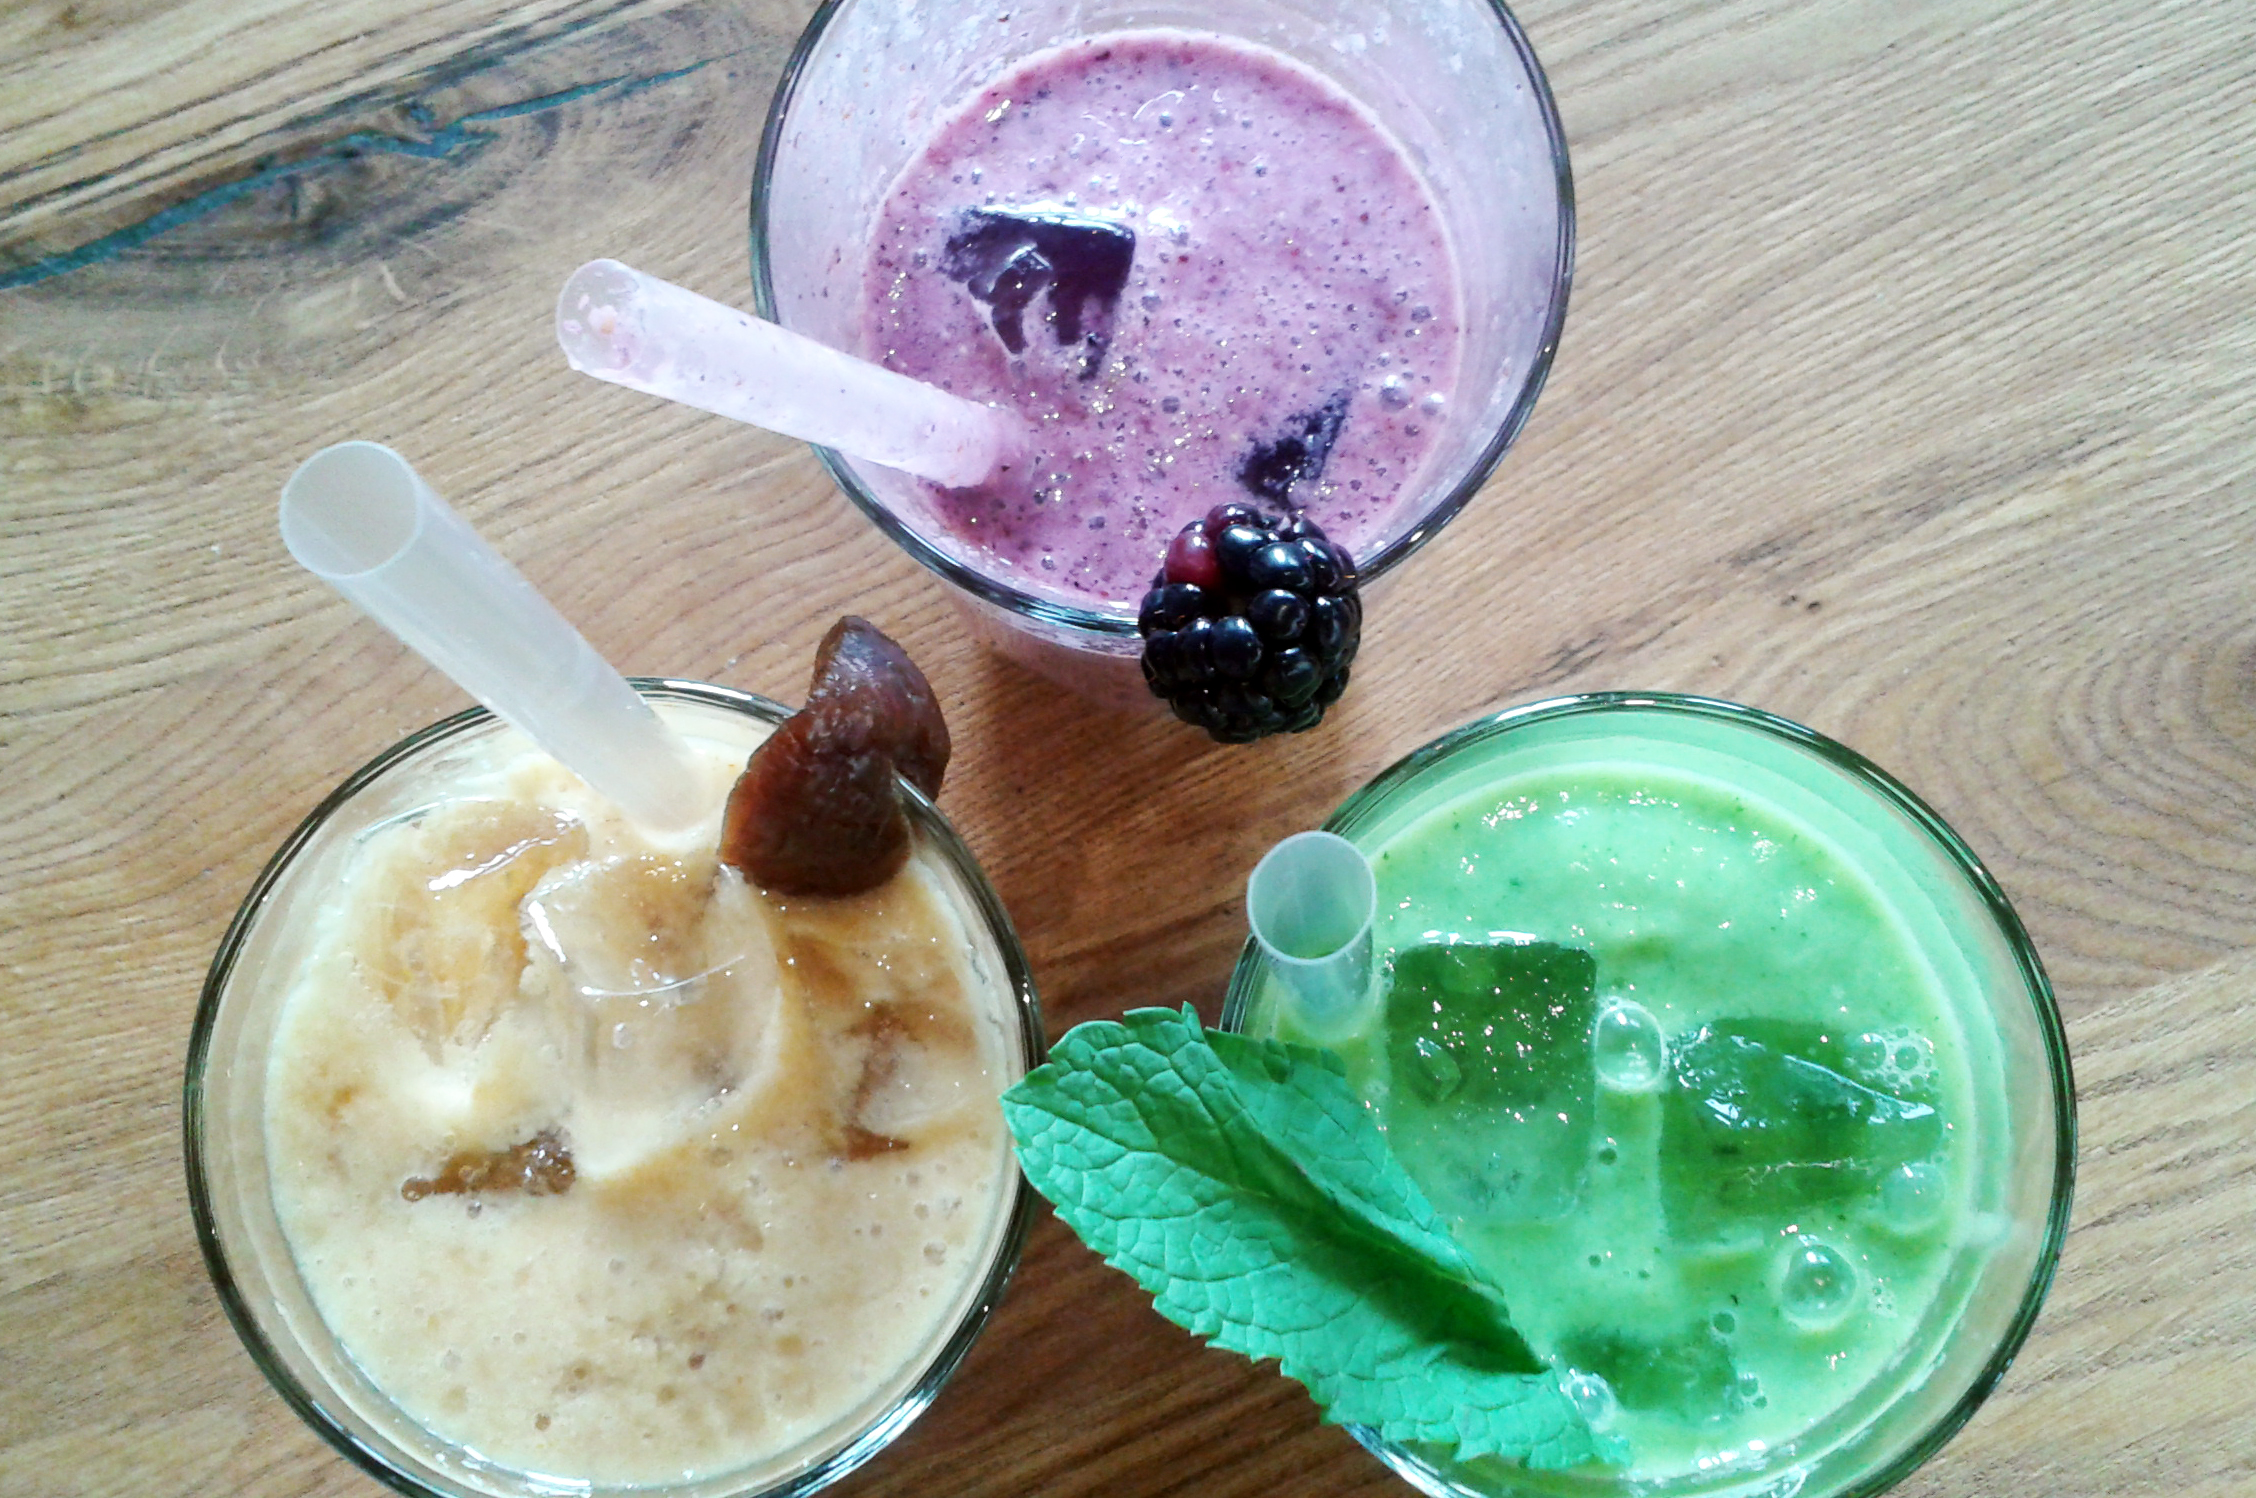 Andina's smoothies come in rich flavours and gorgeous hues